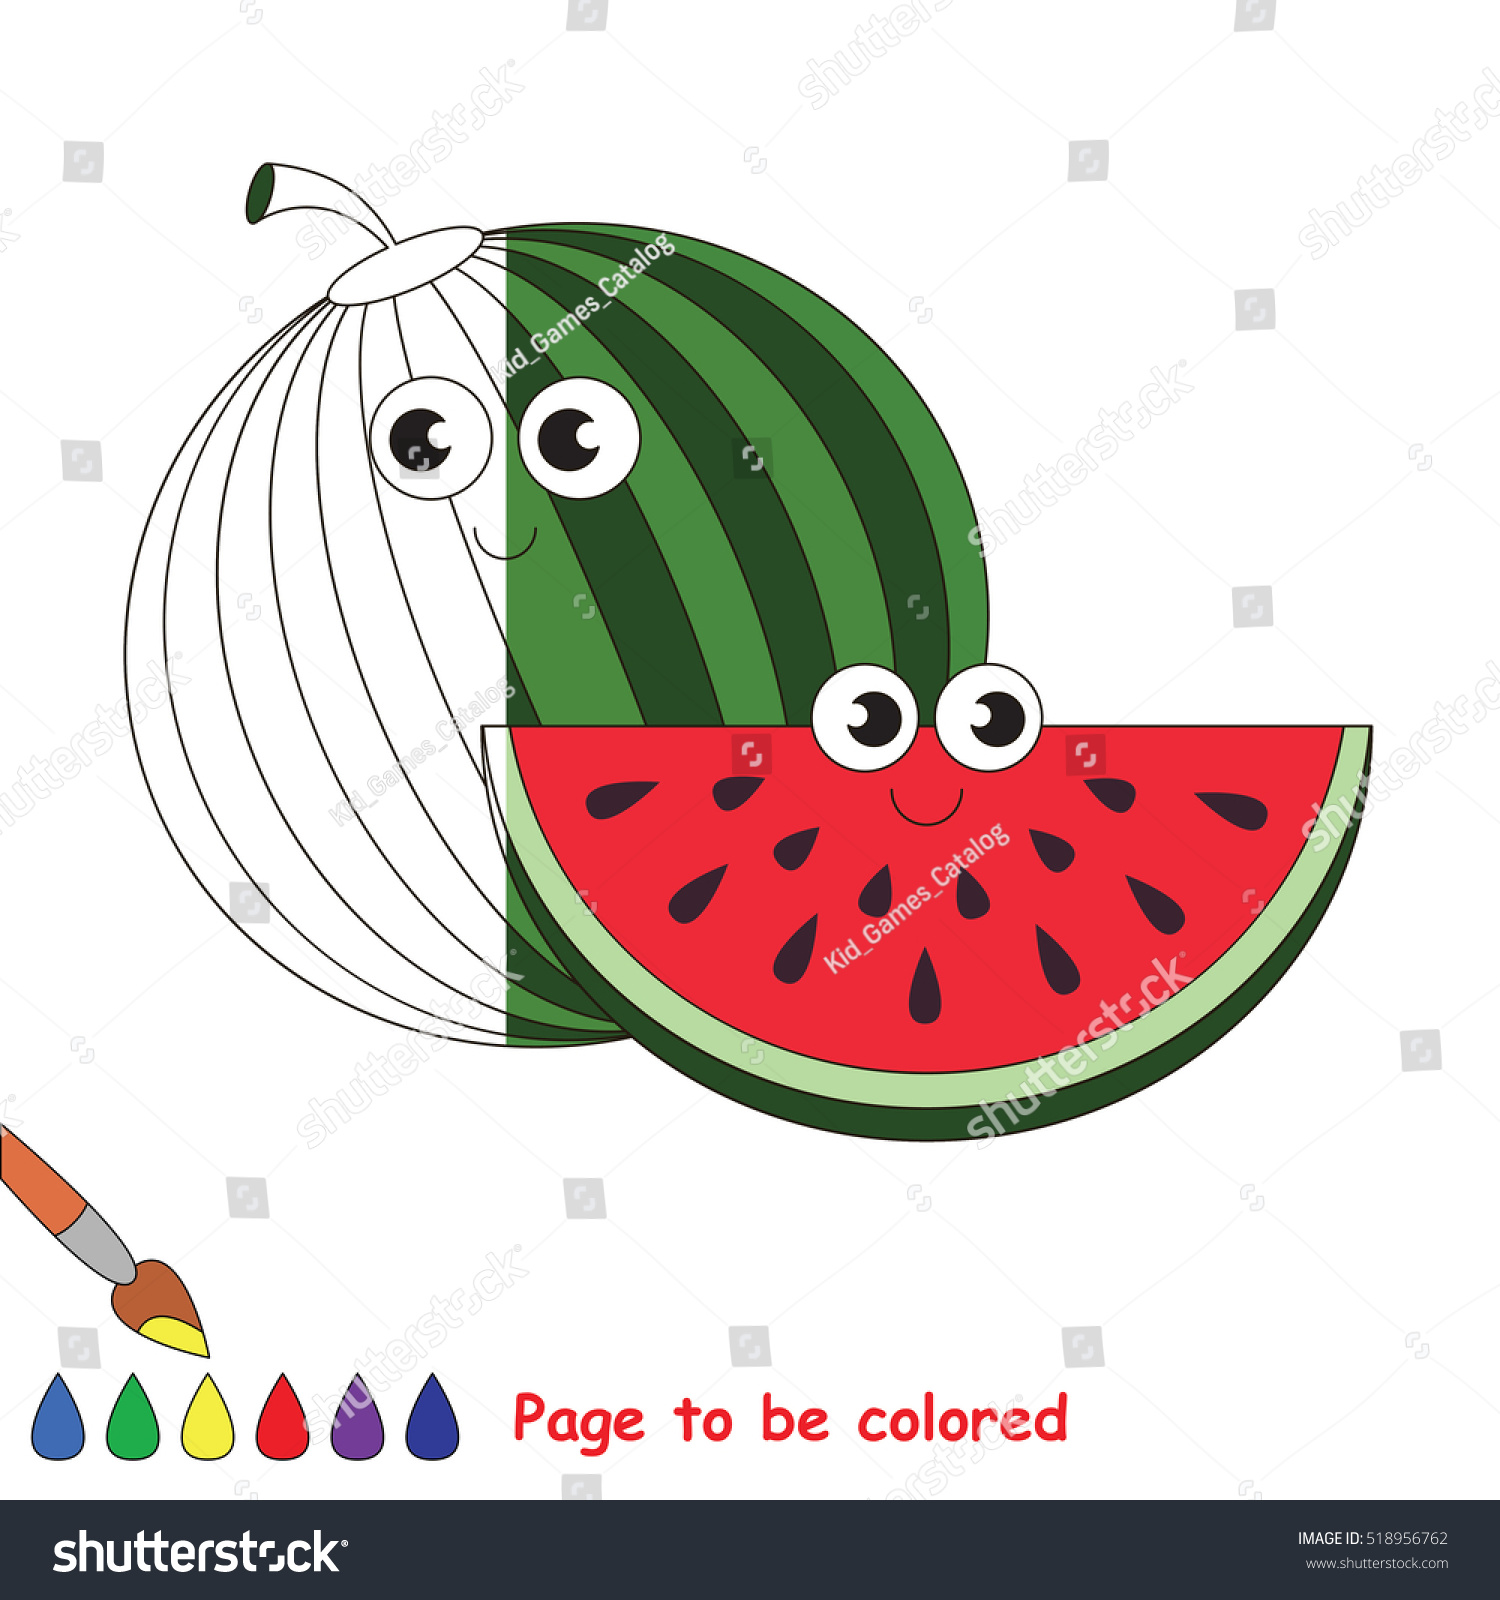 Watermelon Slice Be Colored Coloring Book Stock Photo (Photo, Vector ...